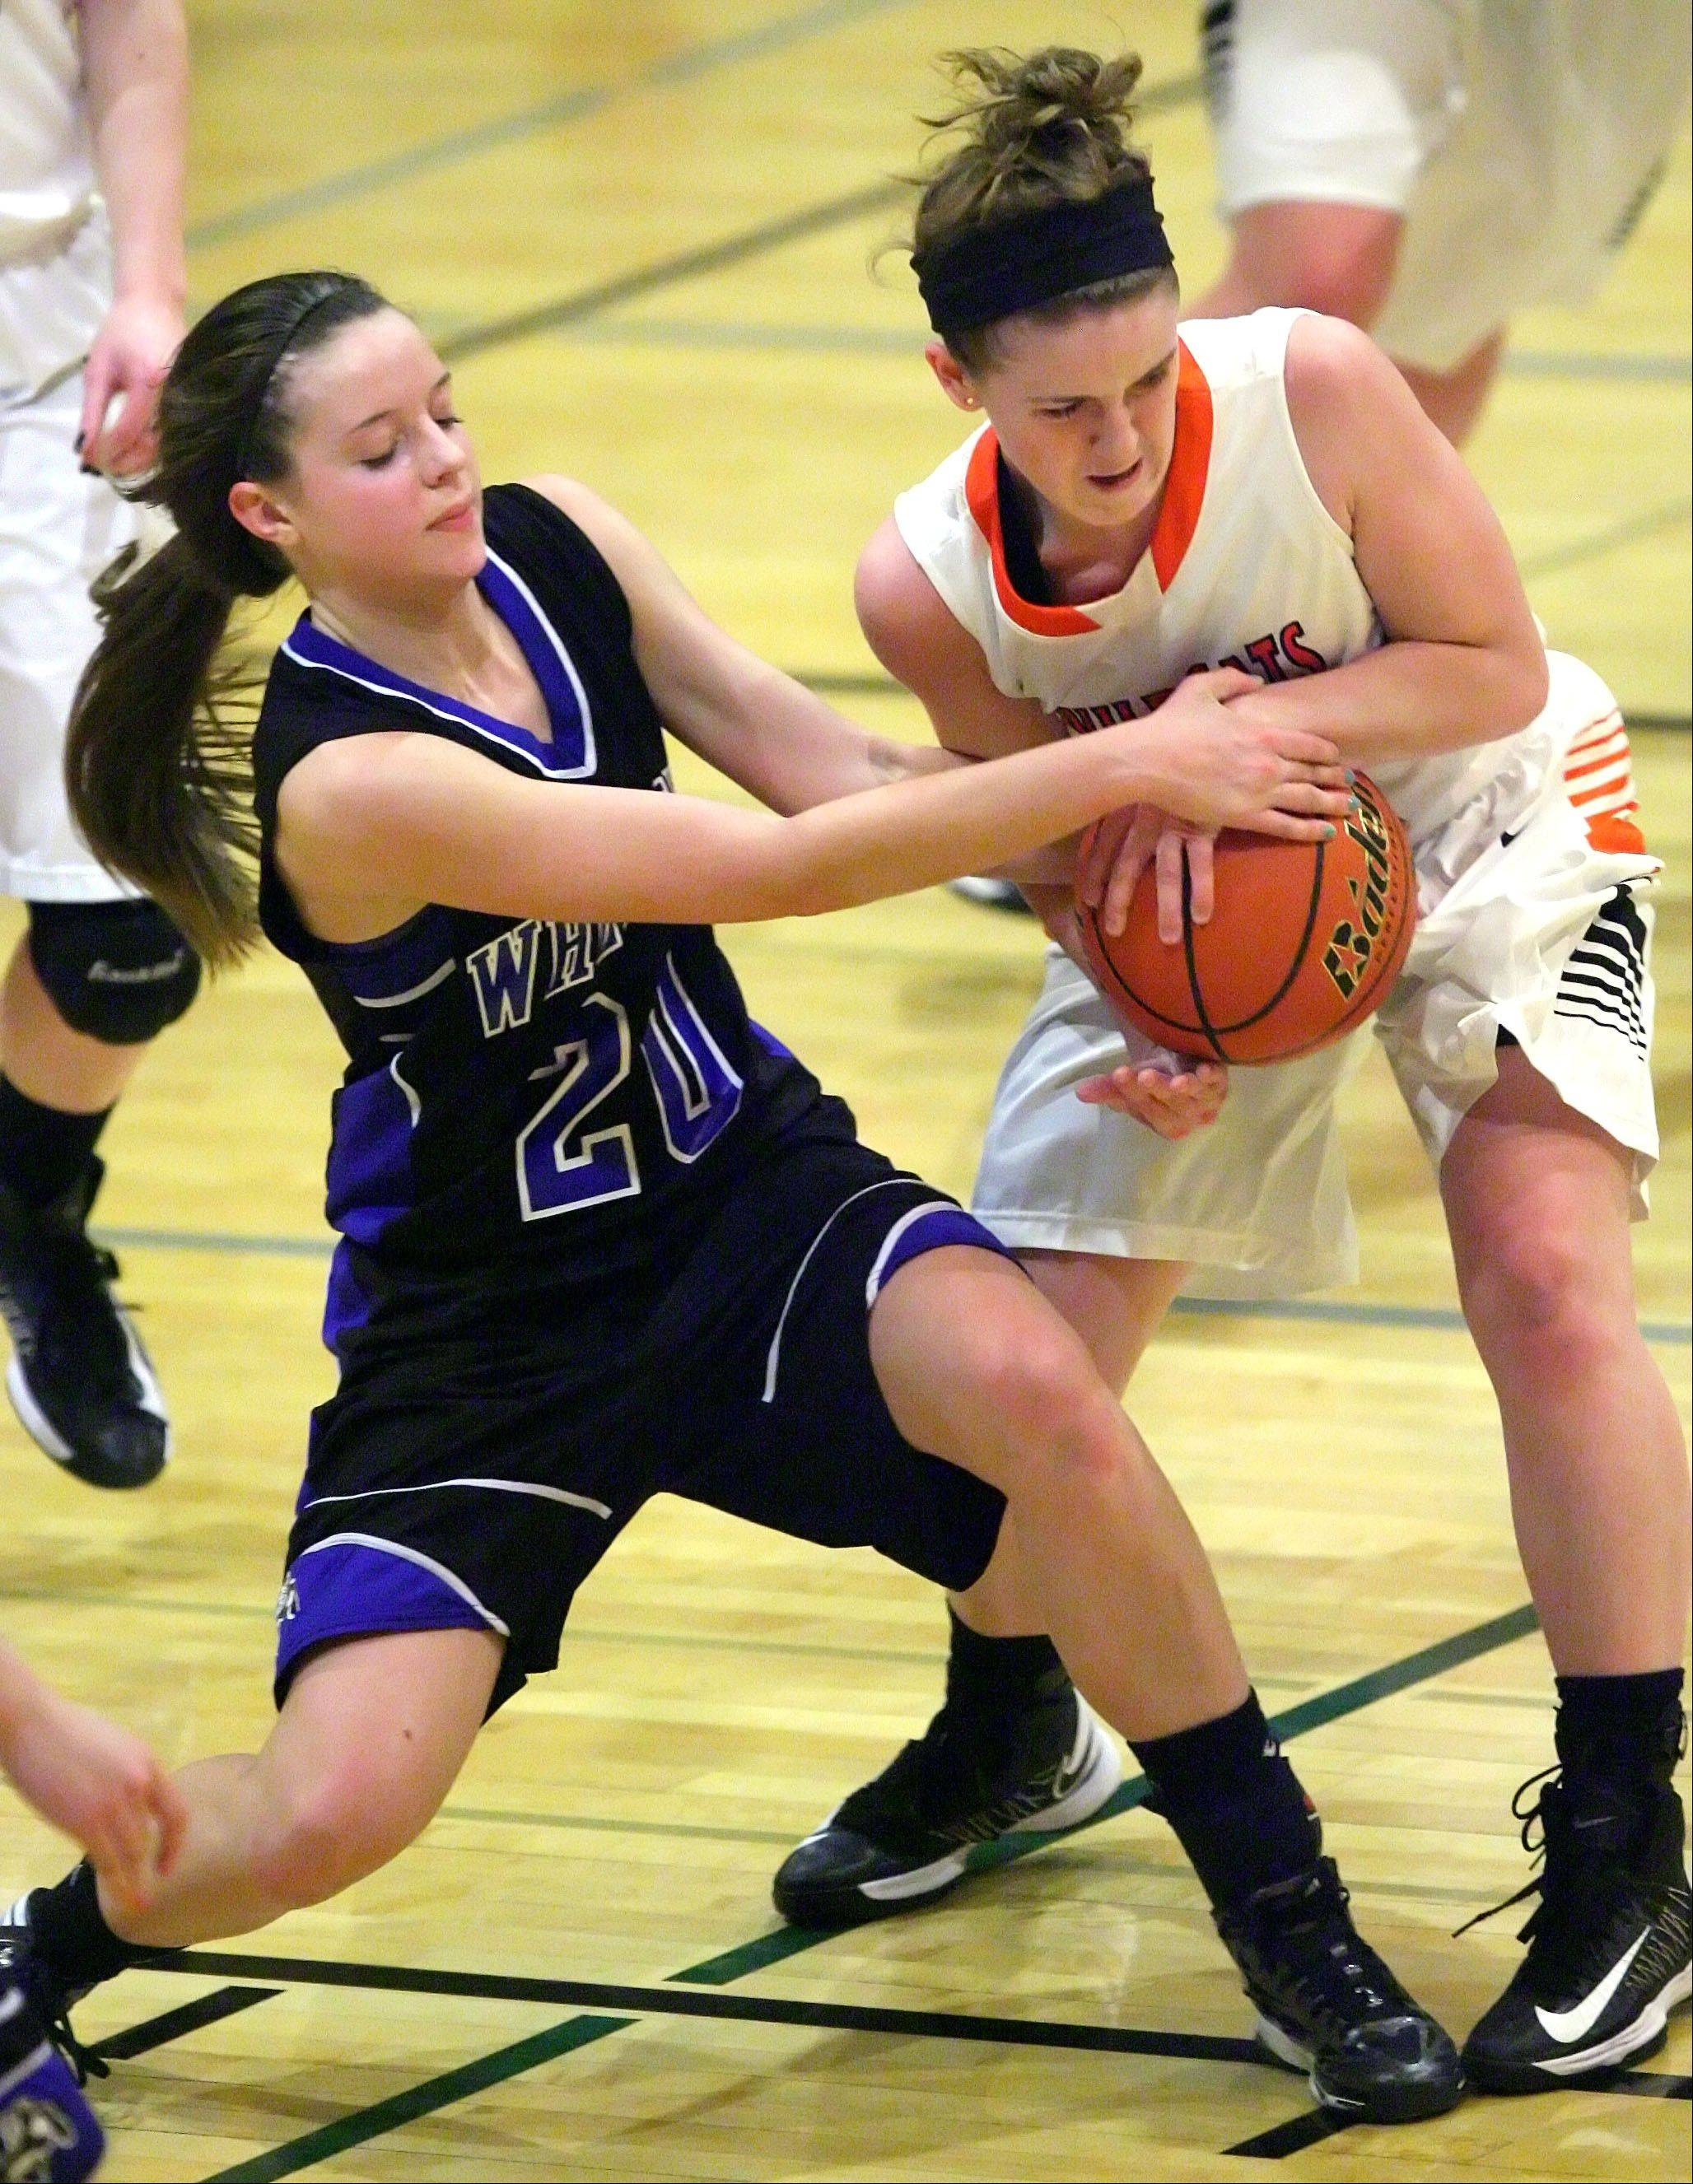 Steve Lundy/slundy@dailyherald.com Wheeling's Elizabeth Smith, left, and Libertyville's Rosie Lynch battle for a loose ball during a Class 4A regional play-in game Monday night at Wheeling.